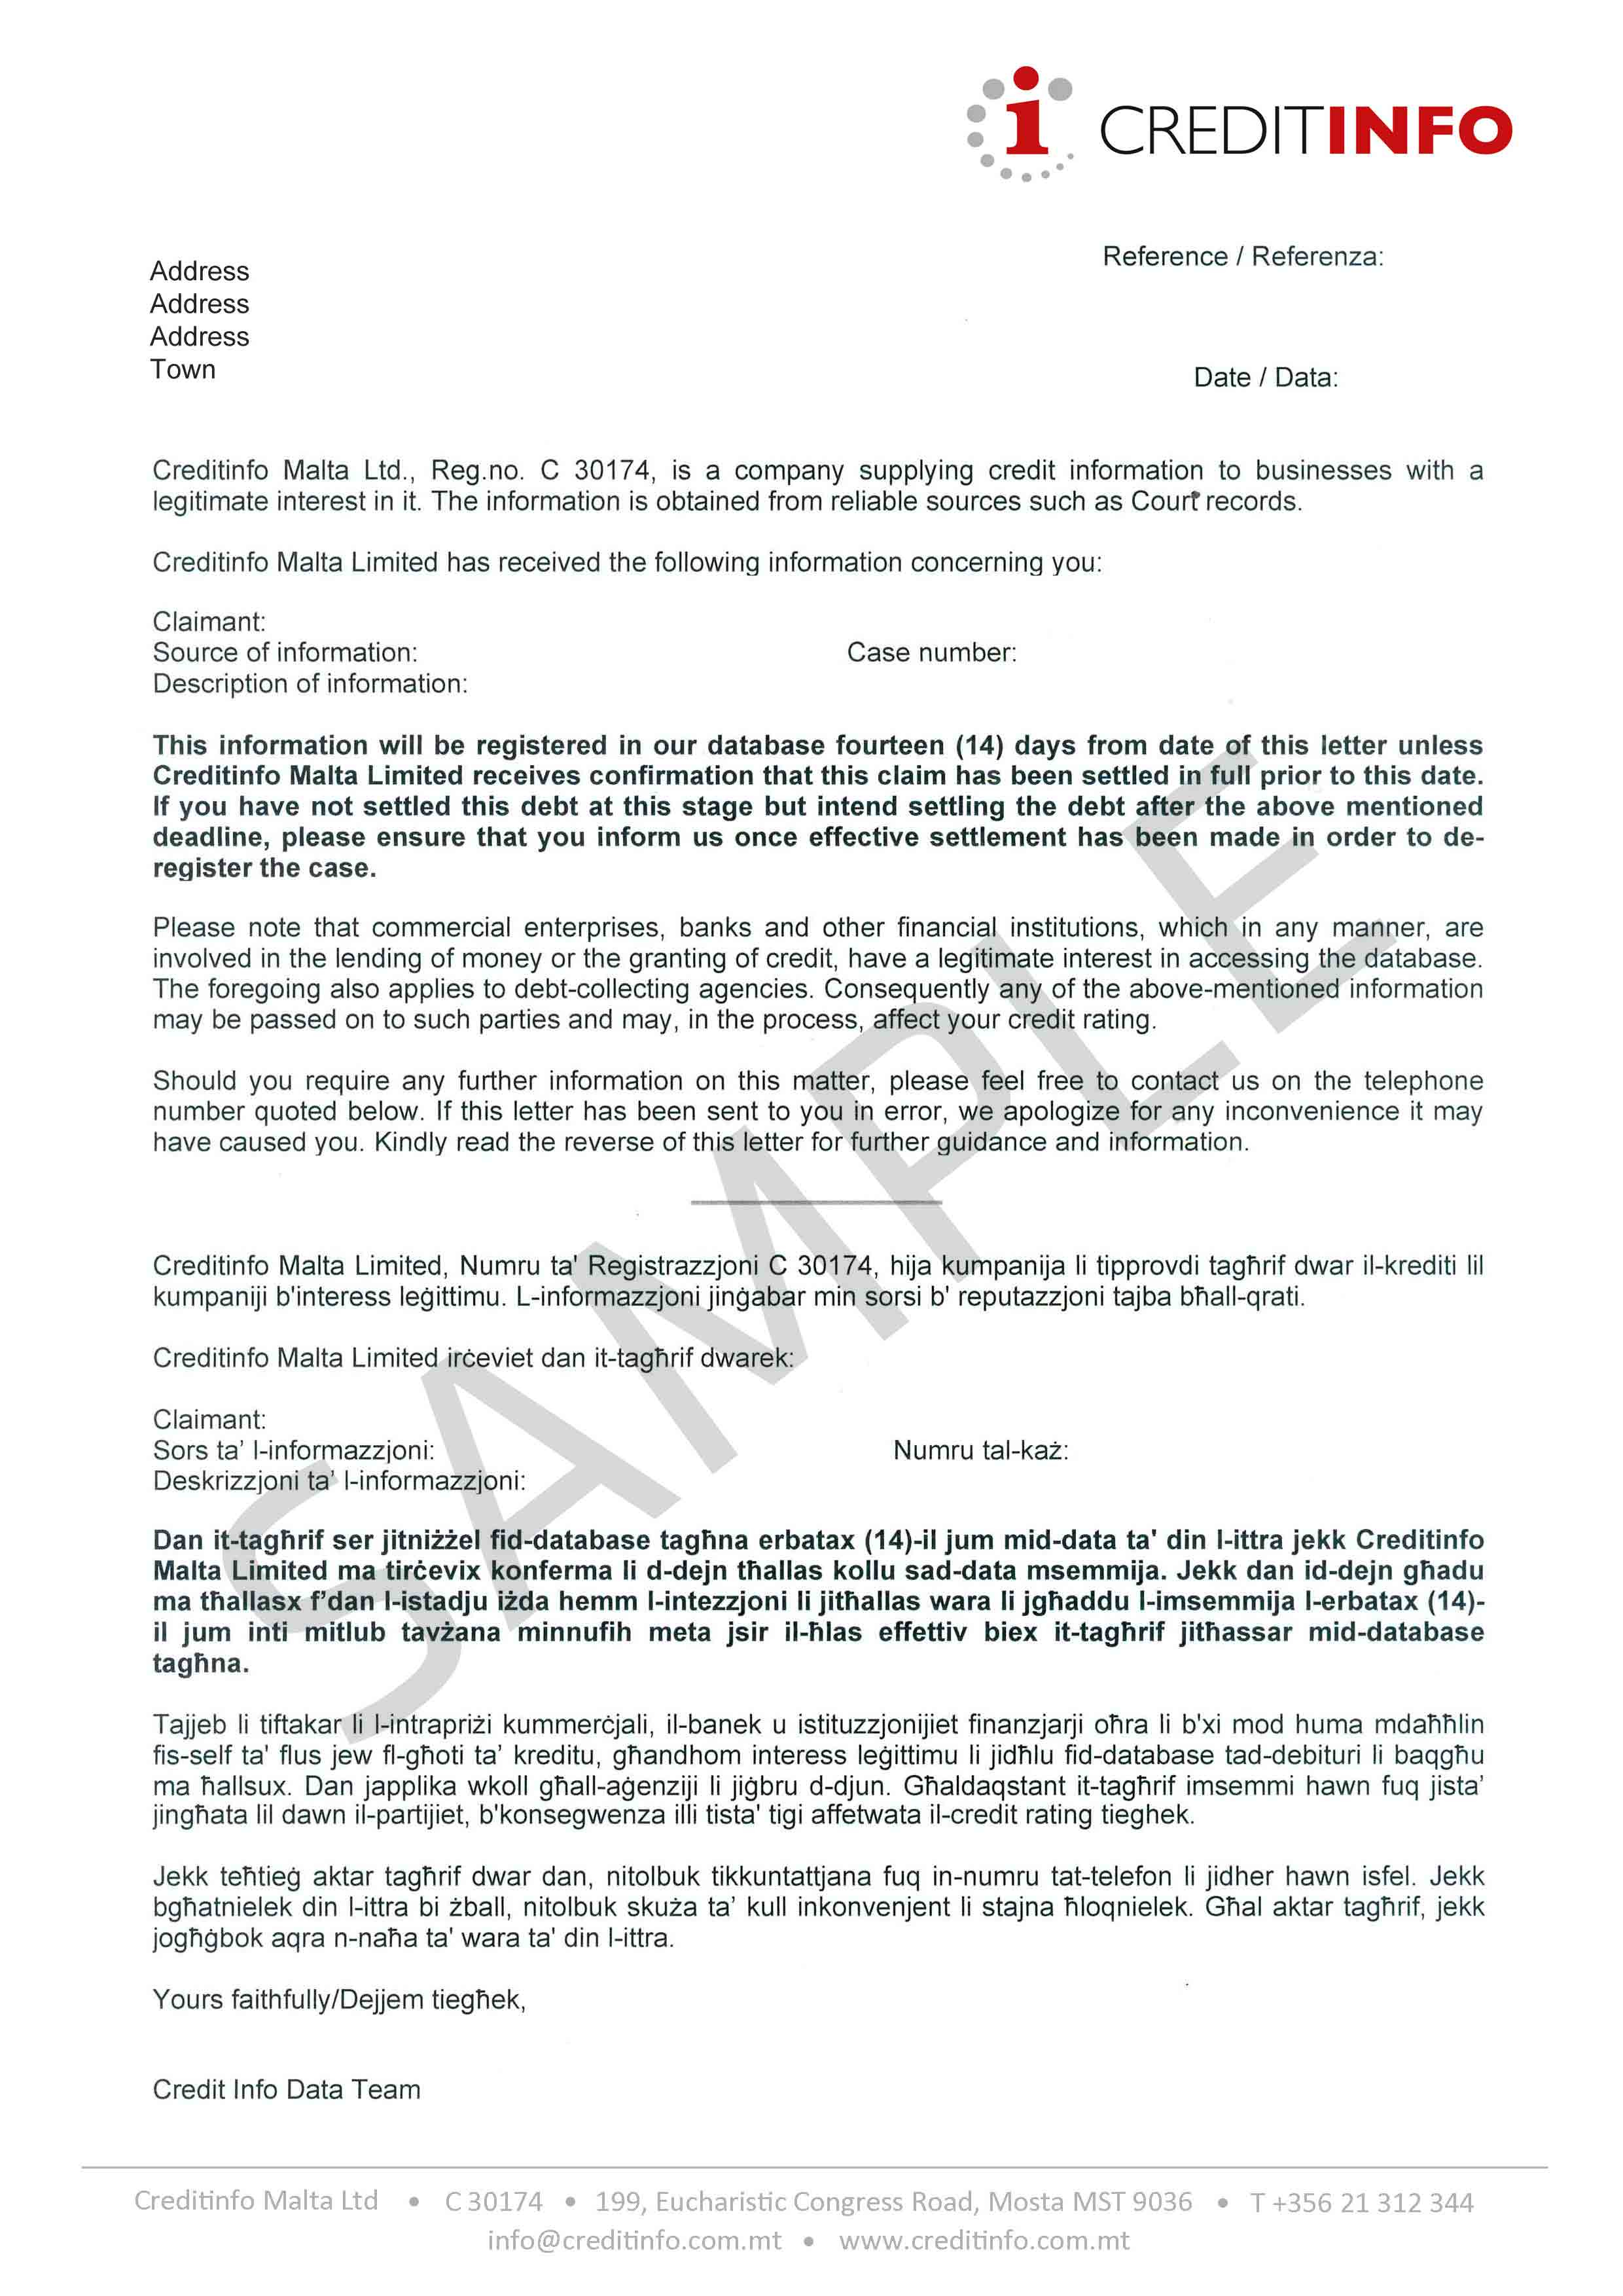 Owed Money Letter Template - How to Write A Letter when someone Owes You Money Letter